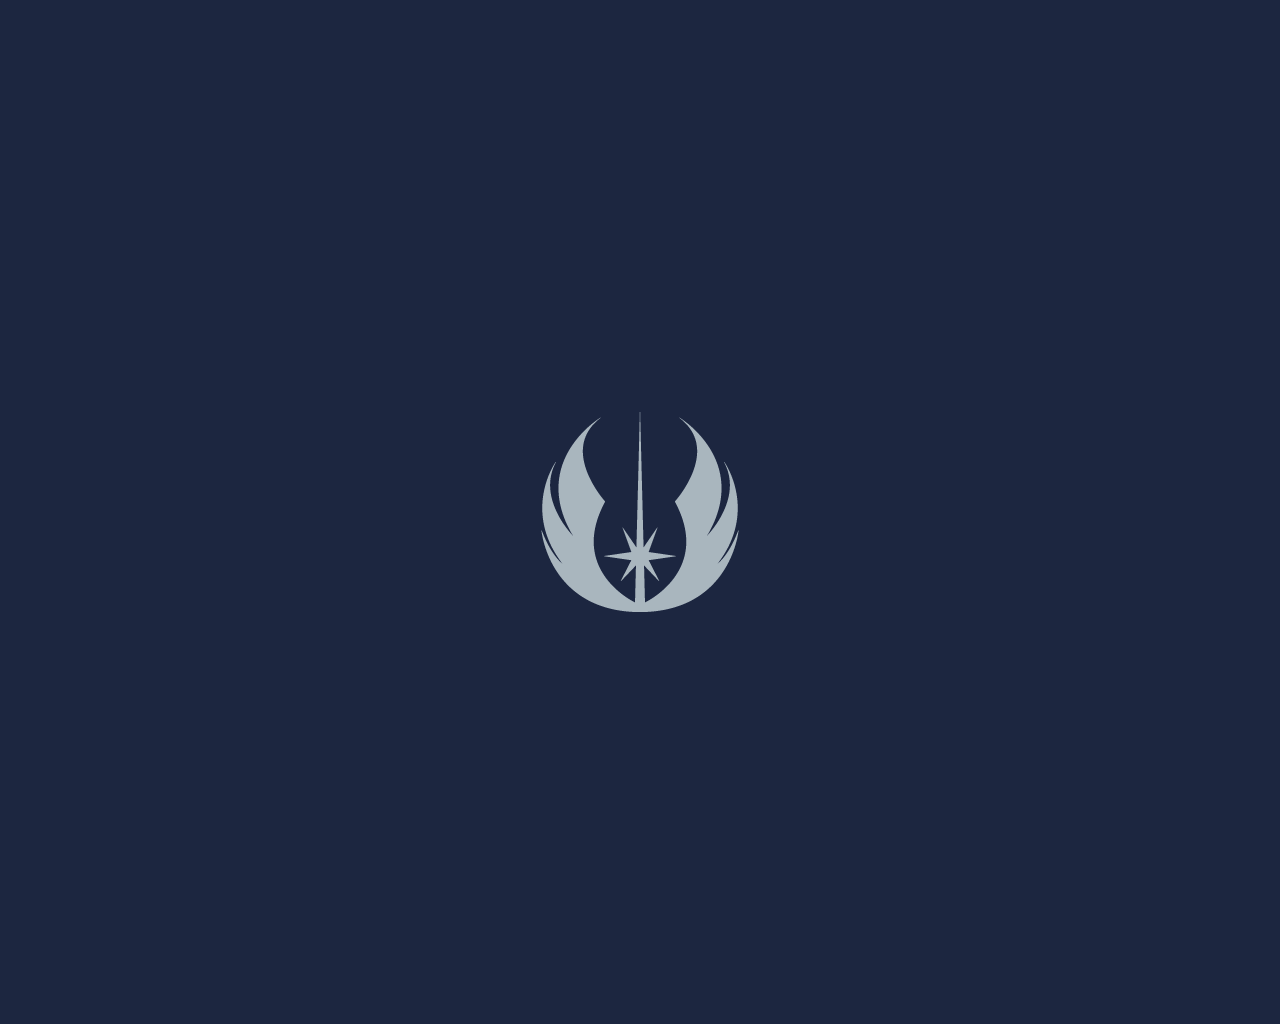 minimalist star wars wallpaper: jedi emblemdiros on deviantart